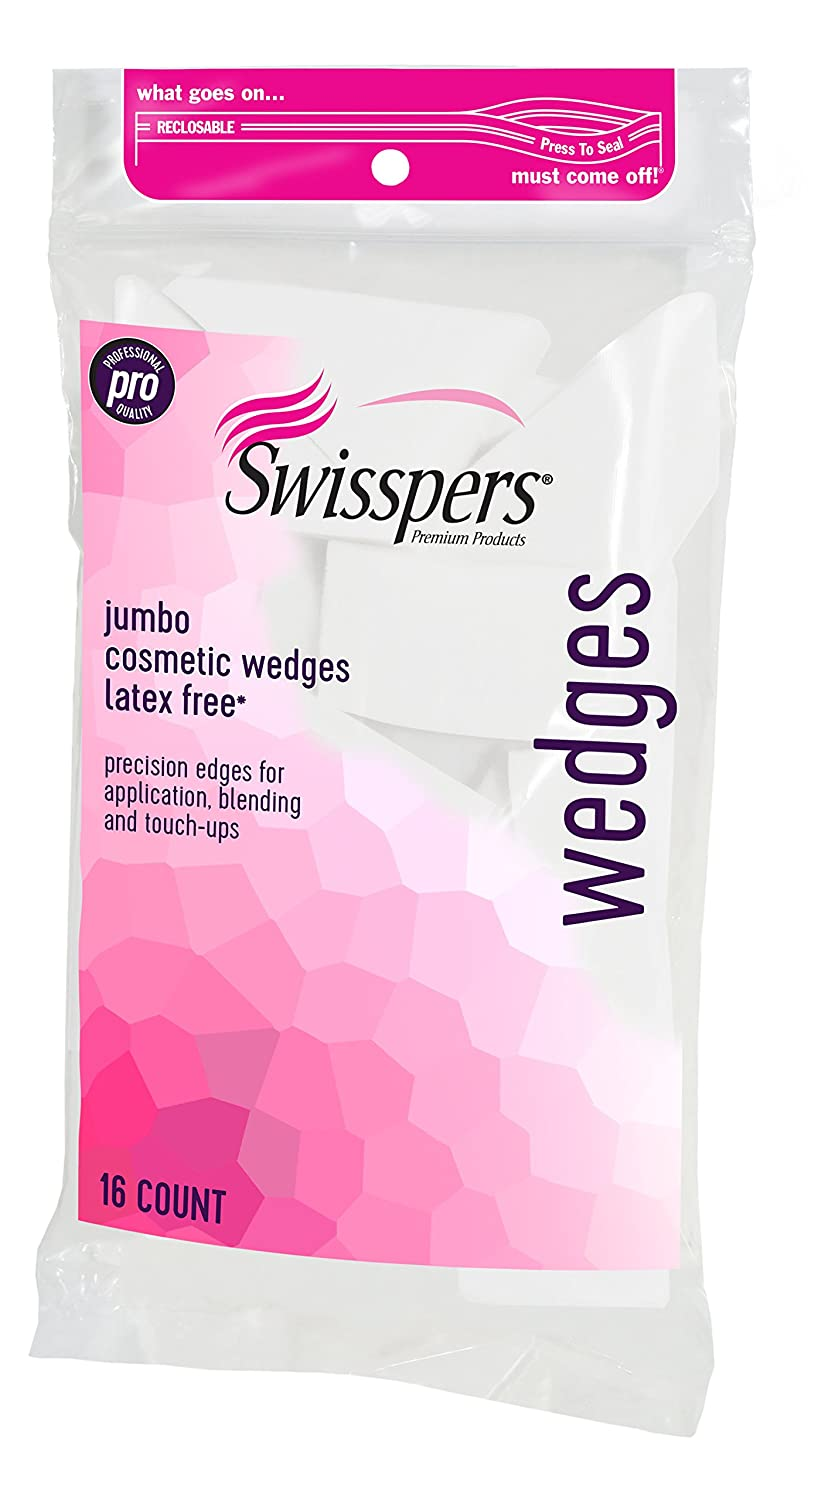 Swisspers Premium Pro Cosmetic Wedges, Latex-Free Makeup Wedge, Jumbo Size, 16Count Bag